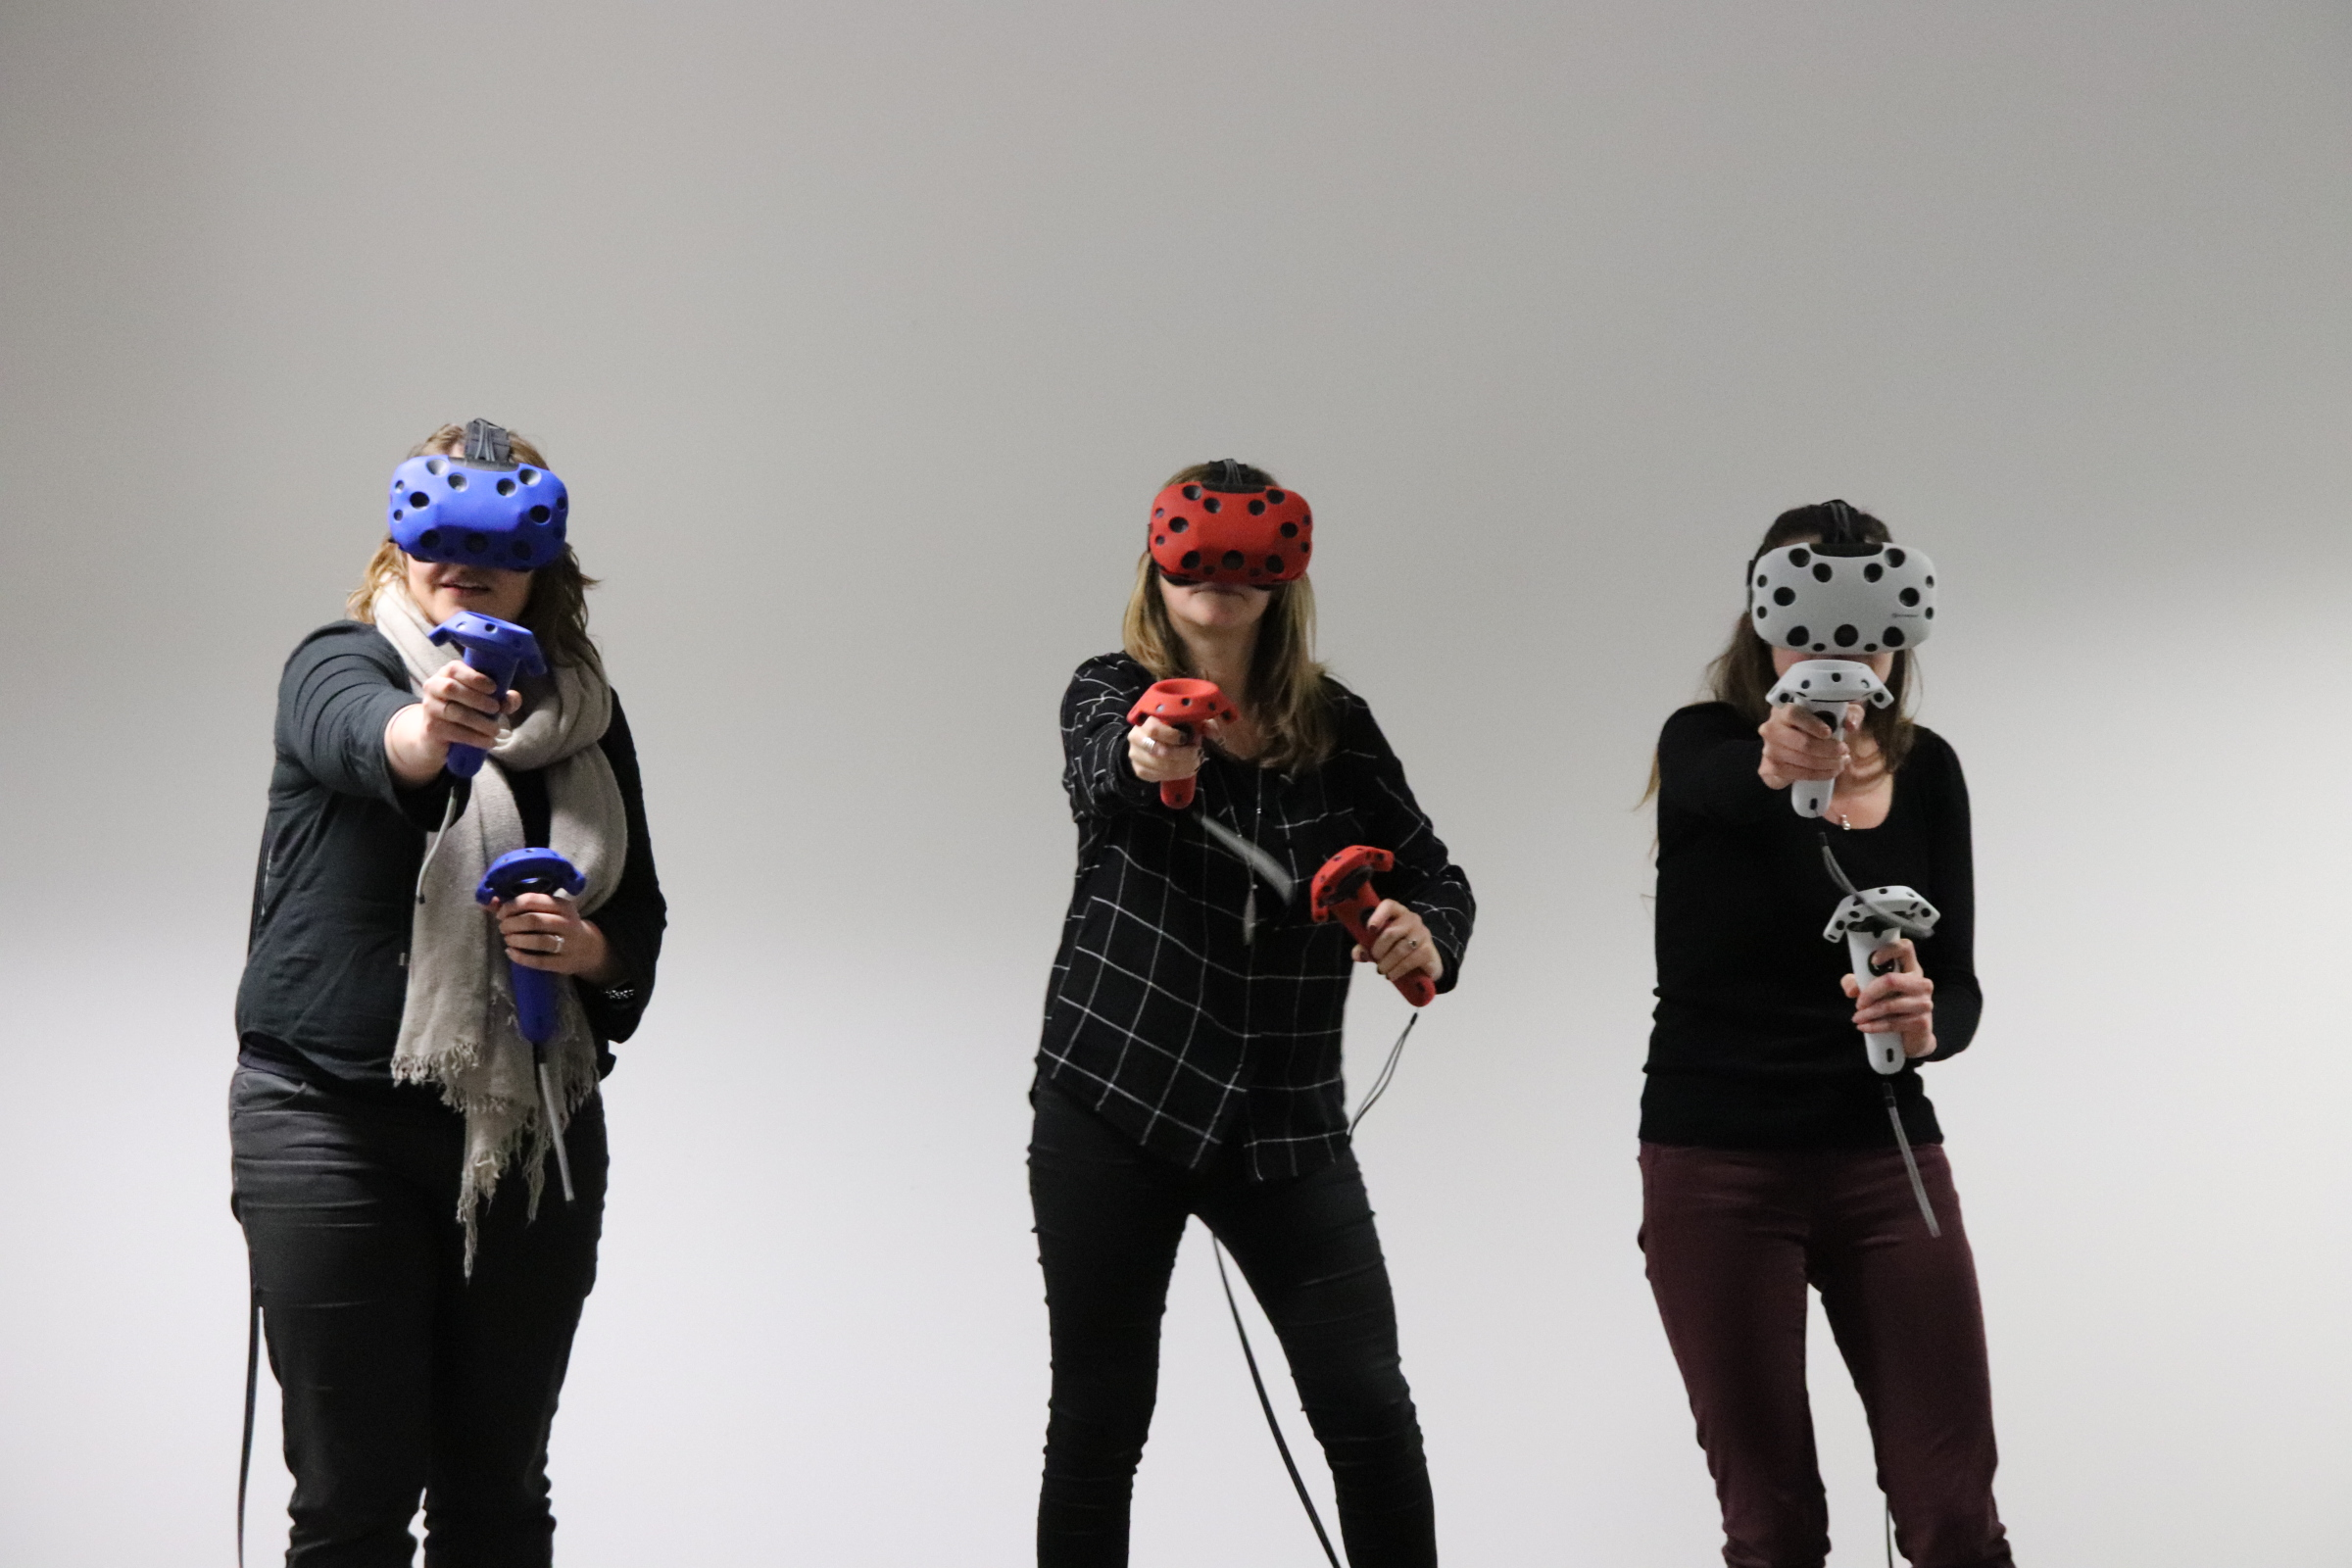 animation réalité virtuelle à Kingsto - animation réalité virtuelle à Kingsto (animation realite virtuelle canada virtual reality3 - animation réalité virtuelle à Kingsto) digitale team building premium entreprise